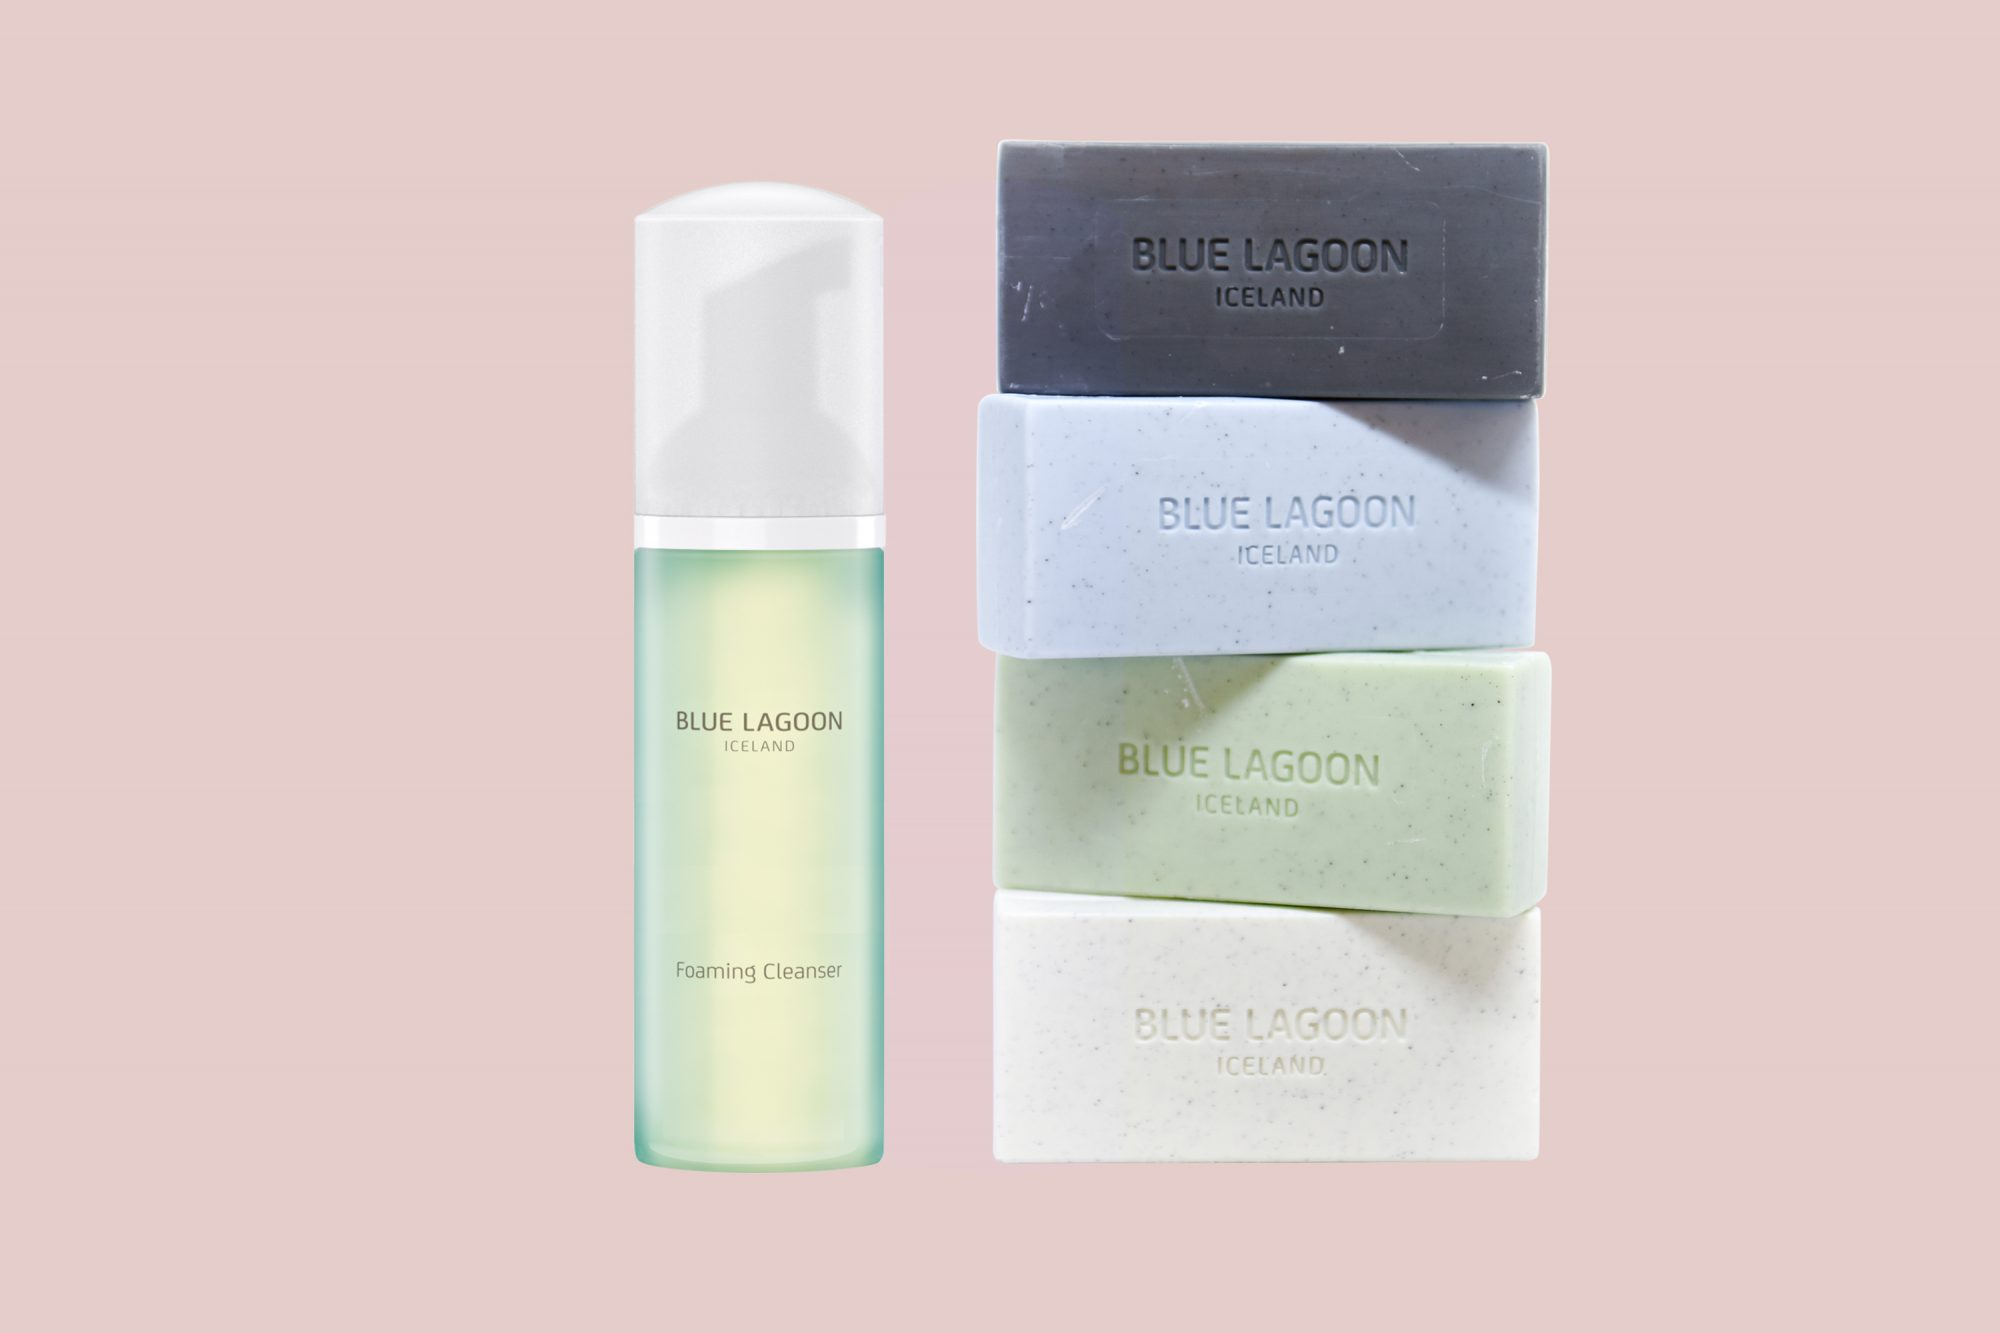 blue lagoon iceland foaming cleanser and lava soap bars